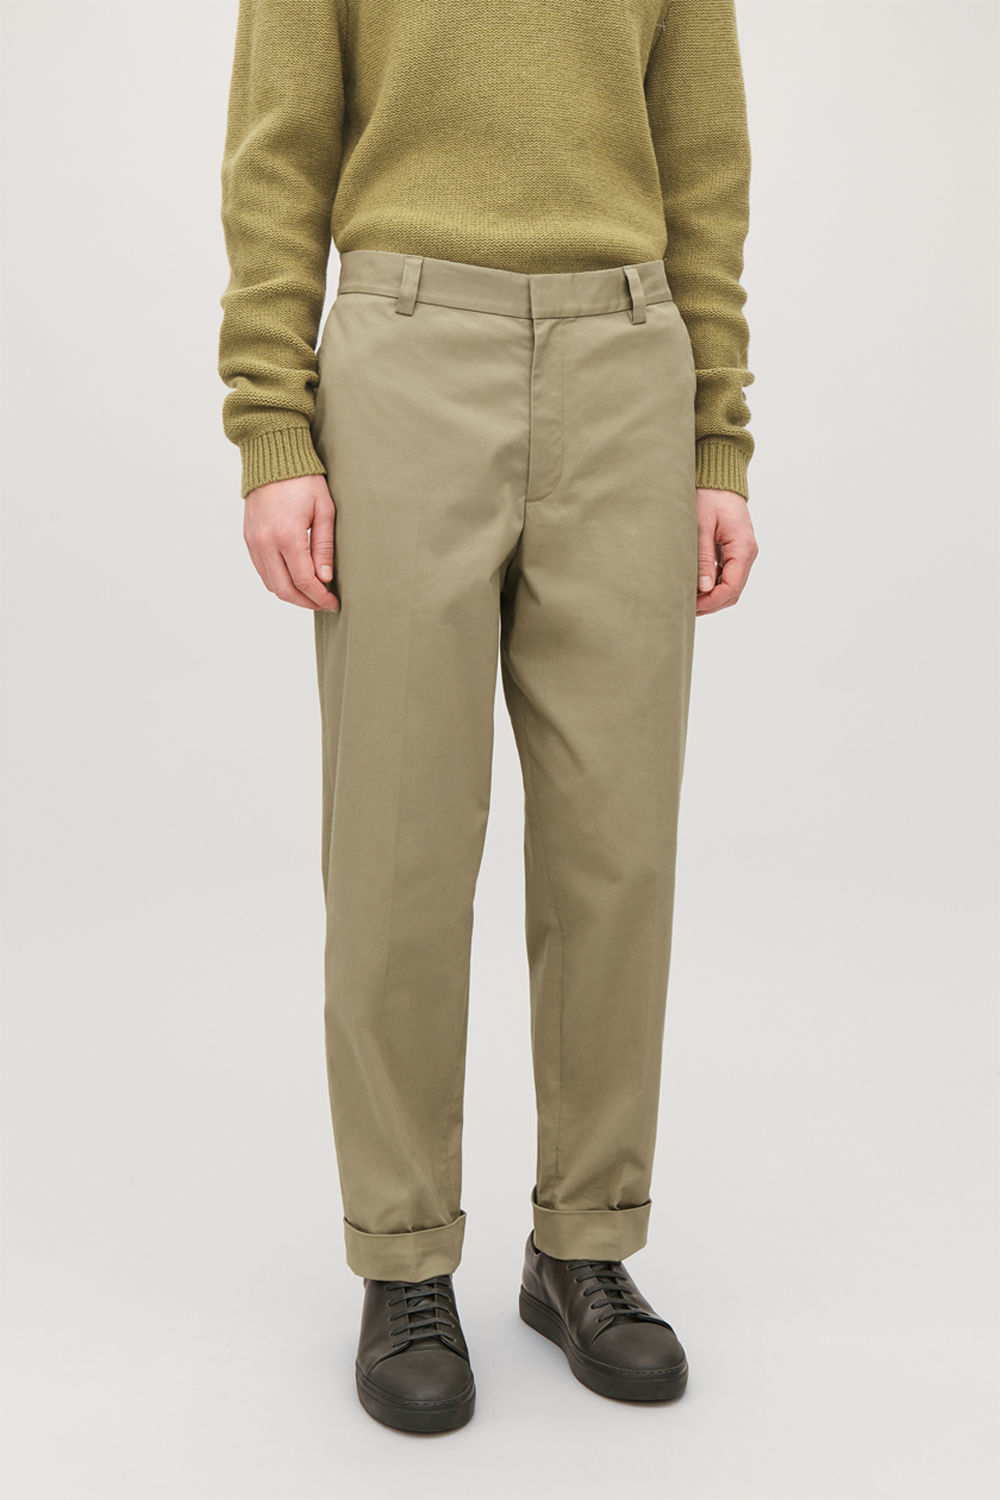 COTTON PRESS-FOLDS CHINOS